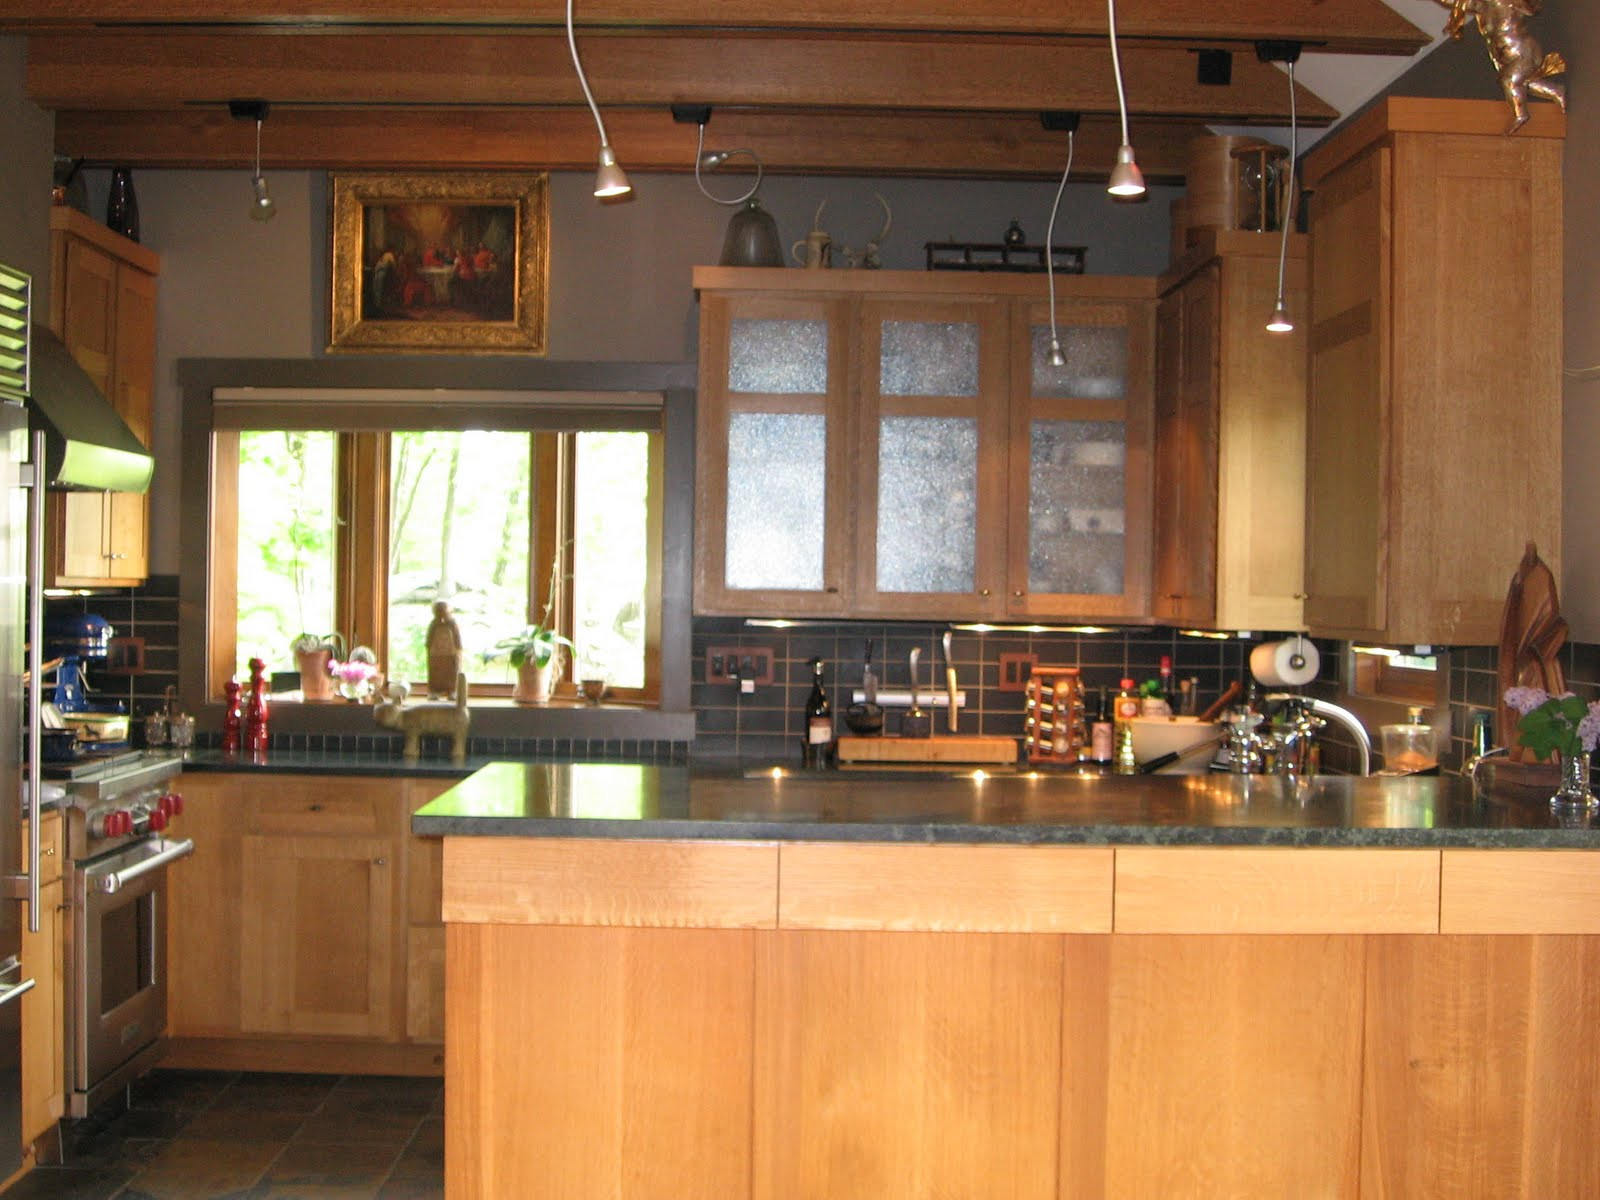 handcrafted custom quarter sawn white oak cabinetry features a simple